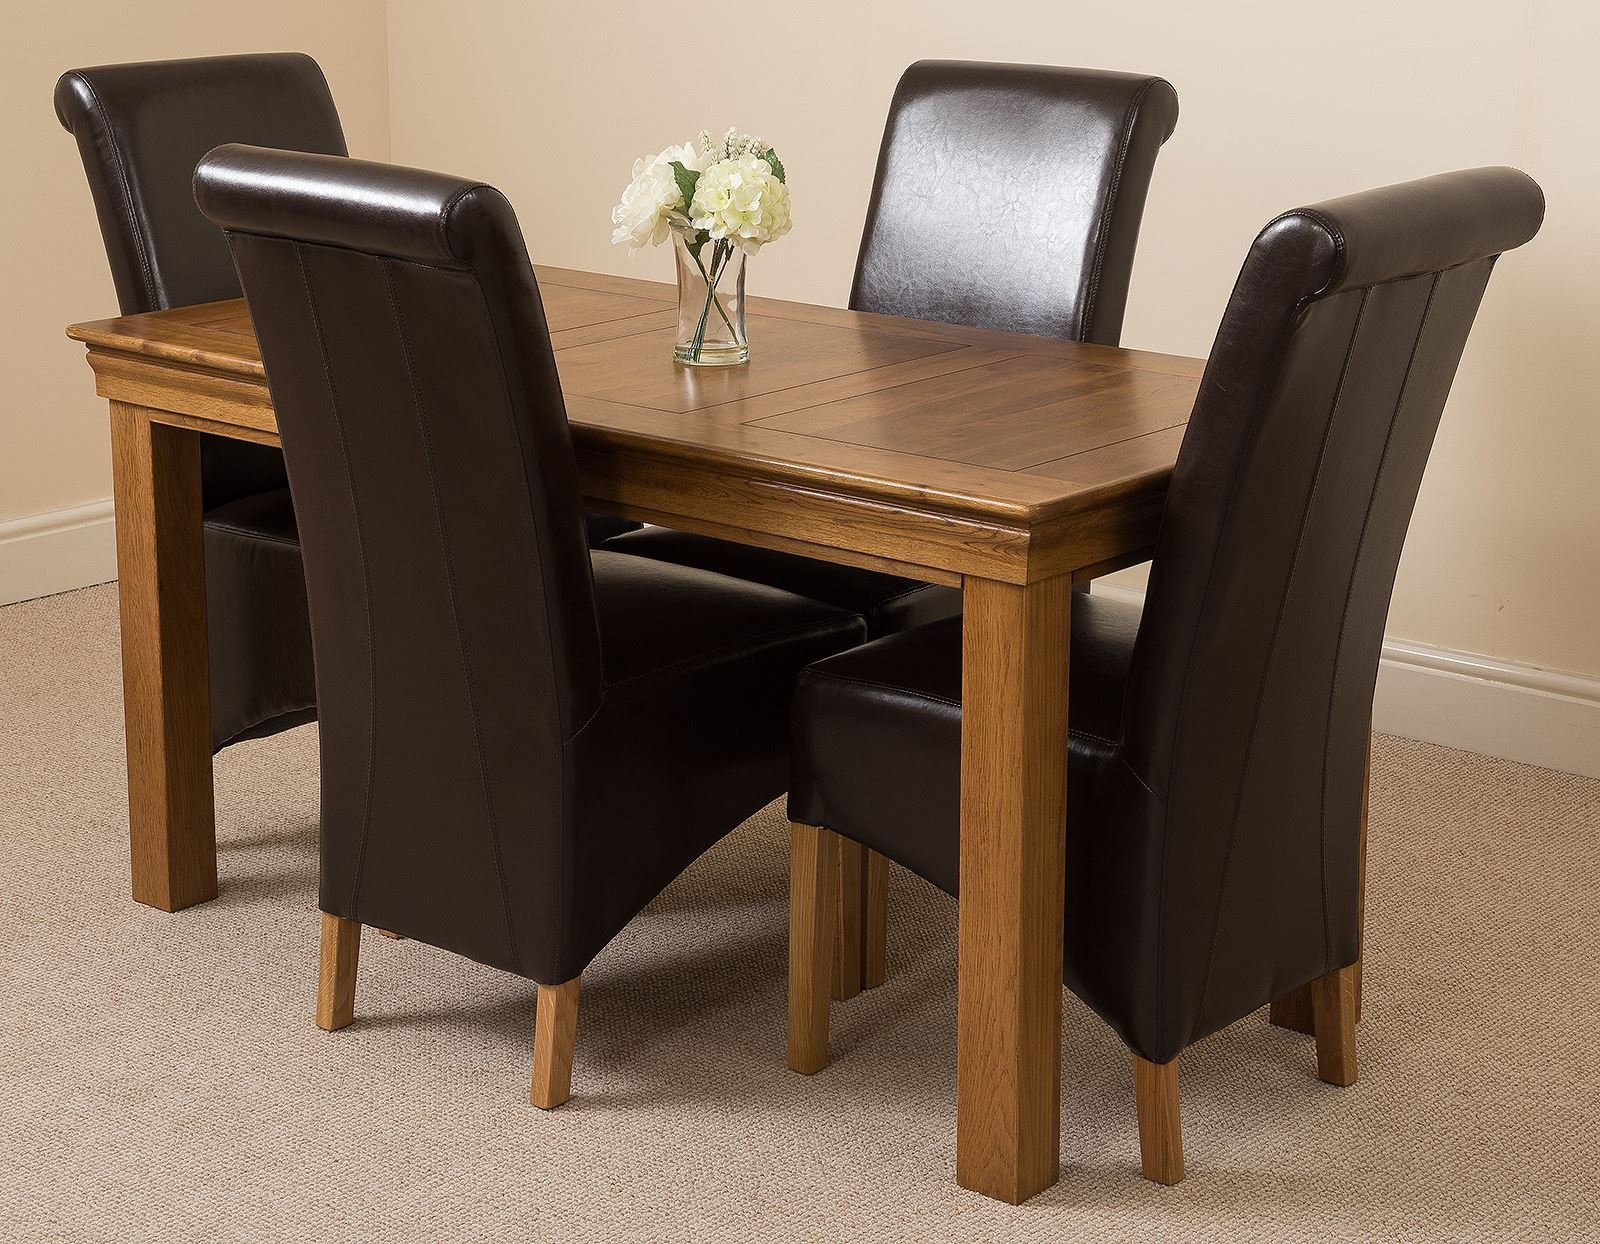 81onzBixUhL - French Rustic Solid Oak 150 cm Dining Table with 4 or 6 Montana Dining Chairs